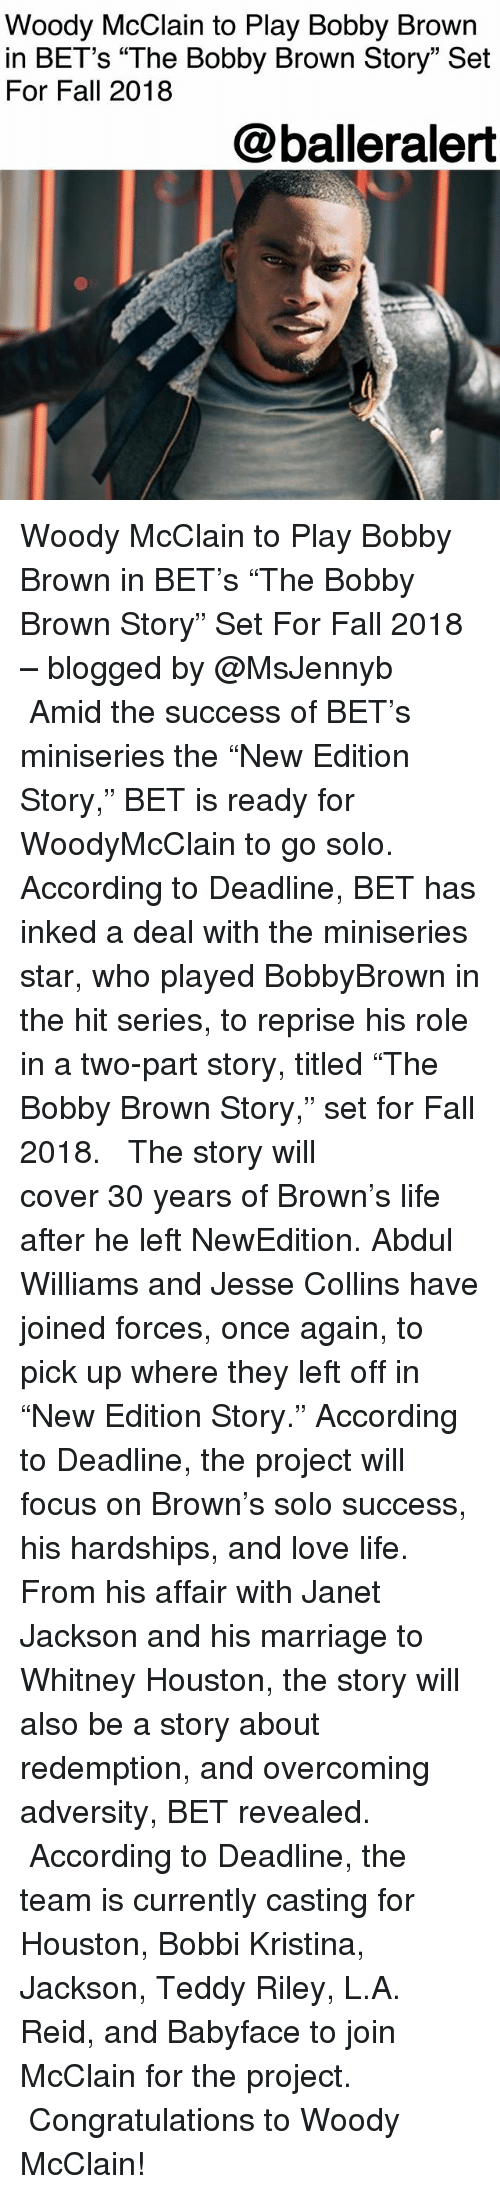 """Fall, Life, and Love: Woody McClain to Play Bobby Brown  in BET's """"The Bobby Brown Story"""" Set  For Fall 2018  @balleralert Woody McClain to Play Bobby Brown in BET's """"The Bobby Brown Story"""" Set For Fall 2018 – blogged by @MsJennyb ⠀⠀⠀⠀⠀⠀⠀ ⠀⠀⠀⠀⠀⠀⠀ Amid the success of BET's miniseries the """"New Edition Story,"""" BET is ready for WoodyMcClain to go solo. According to Deadline, BET has inked a deal with the miniseries star, who played BobbyBrown in the hit series, to reprise his role in a two-part story, titled """"The Bobby Brown Story,"""" set for Fall 2018. ⠀⠀⠀⠀⠀⠀⠀ ⠀⠀⠀⠀⠀⠀⠀ The story will cover 30 years of Brown's life after he left NewEdition. Abdul Williams and Jesse Collins have joined forces, once again, to pick up where they left off in """"New Edition Story."""" According to Deadline, the project will focus on Brown's solo success, his hardships, and love life. From his affair with Janet Jackson and his marriage to Whitney Houston, the story will also be a story about redemption, and overcoming adversity, BET revealed. ⠀⠀⠀⠀⠀⠀⠀ ⠀⠀⠀⠀⠀⠀⠀ According to Deadline, the team is currently casting for Houston, Bobbi Kristina, Jackson, Teddy Riley, L.A. Reid, and Babyface to join McClain for the project. ⠀⠀⠀⠀⠀⠀⠀ ⠀⠀⠀⠀⠀⠀⠀ Congratulations to Woody McClain!"""